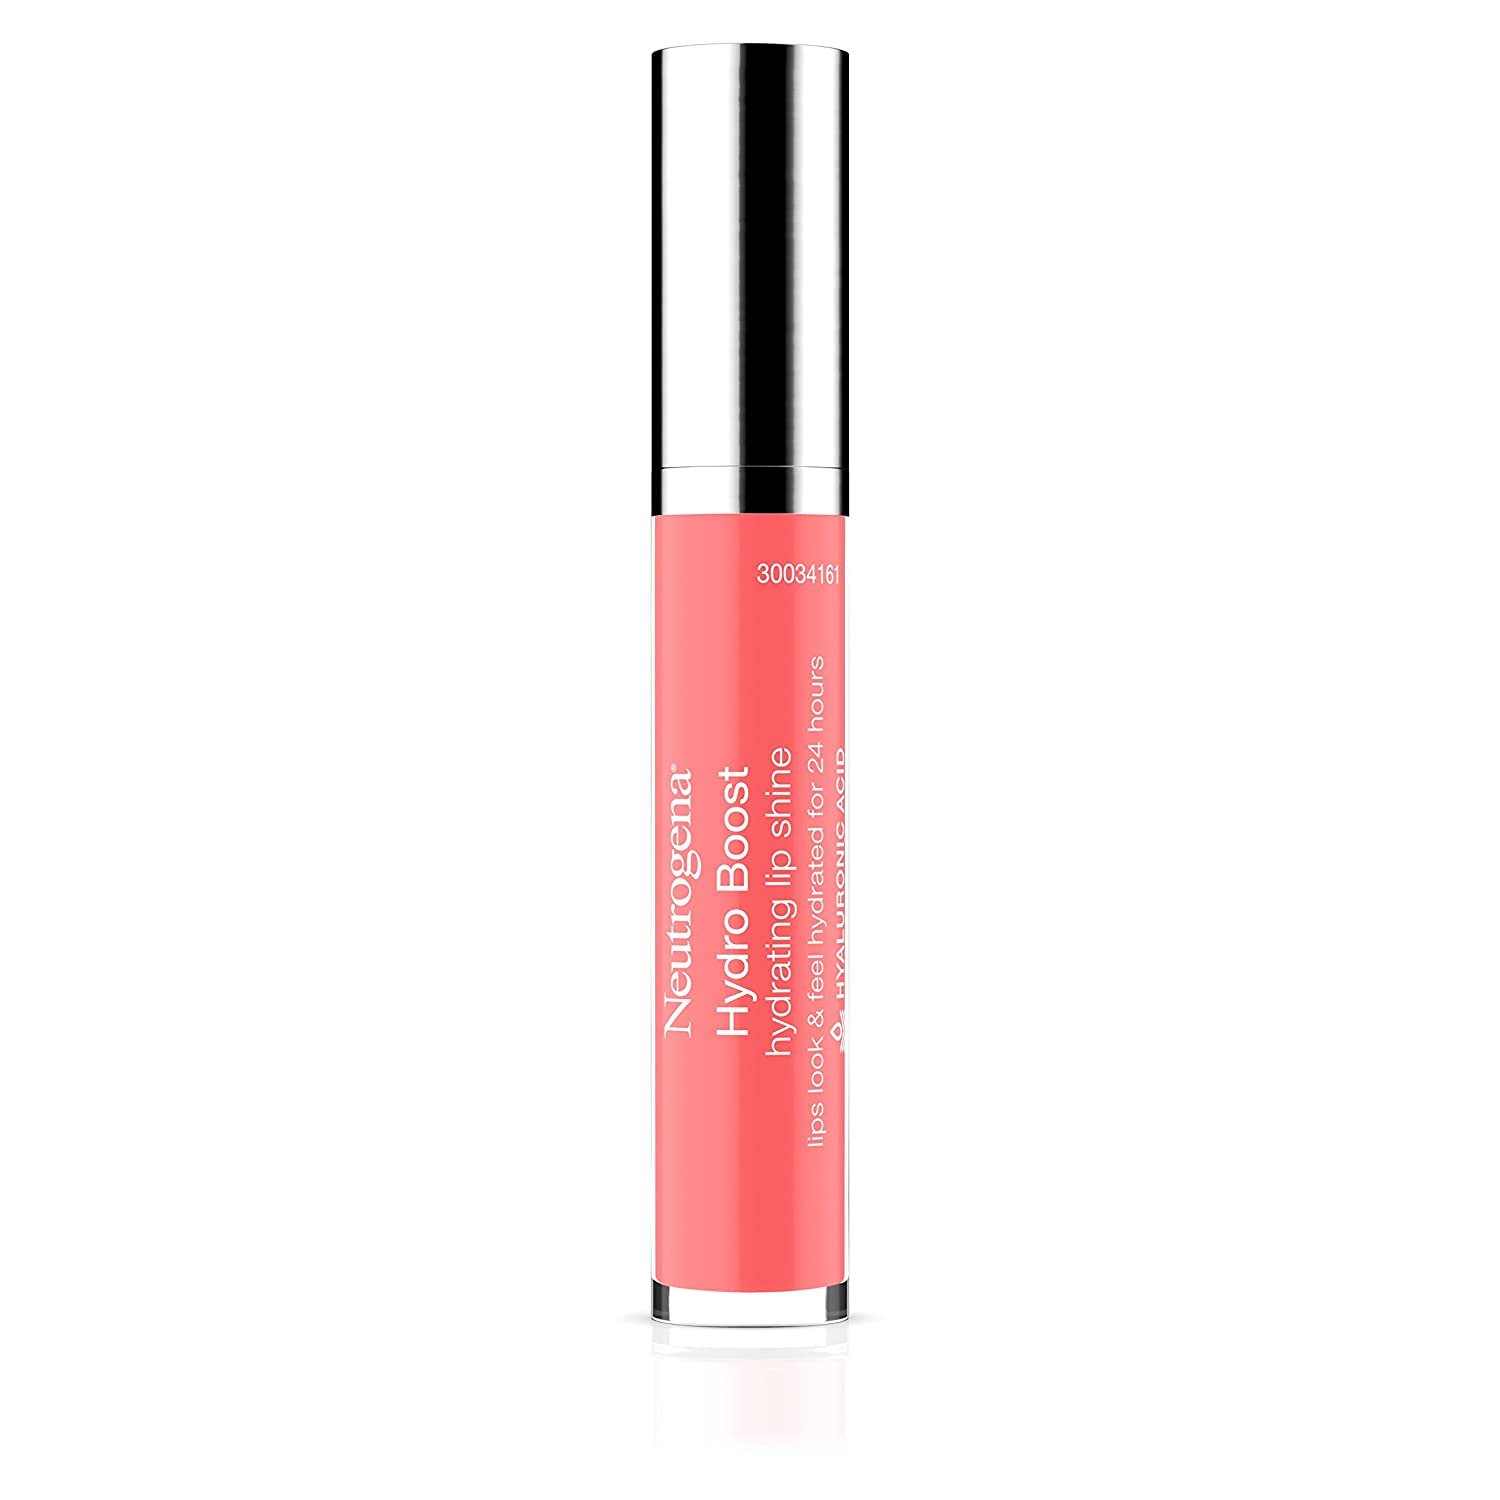 Neutrogena Hydro Boost Hydrating Lip Shine, Flushed Coral 30, 0.10 Ounce